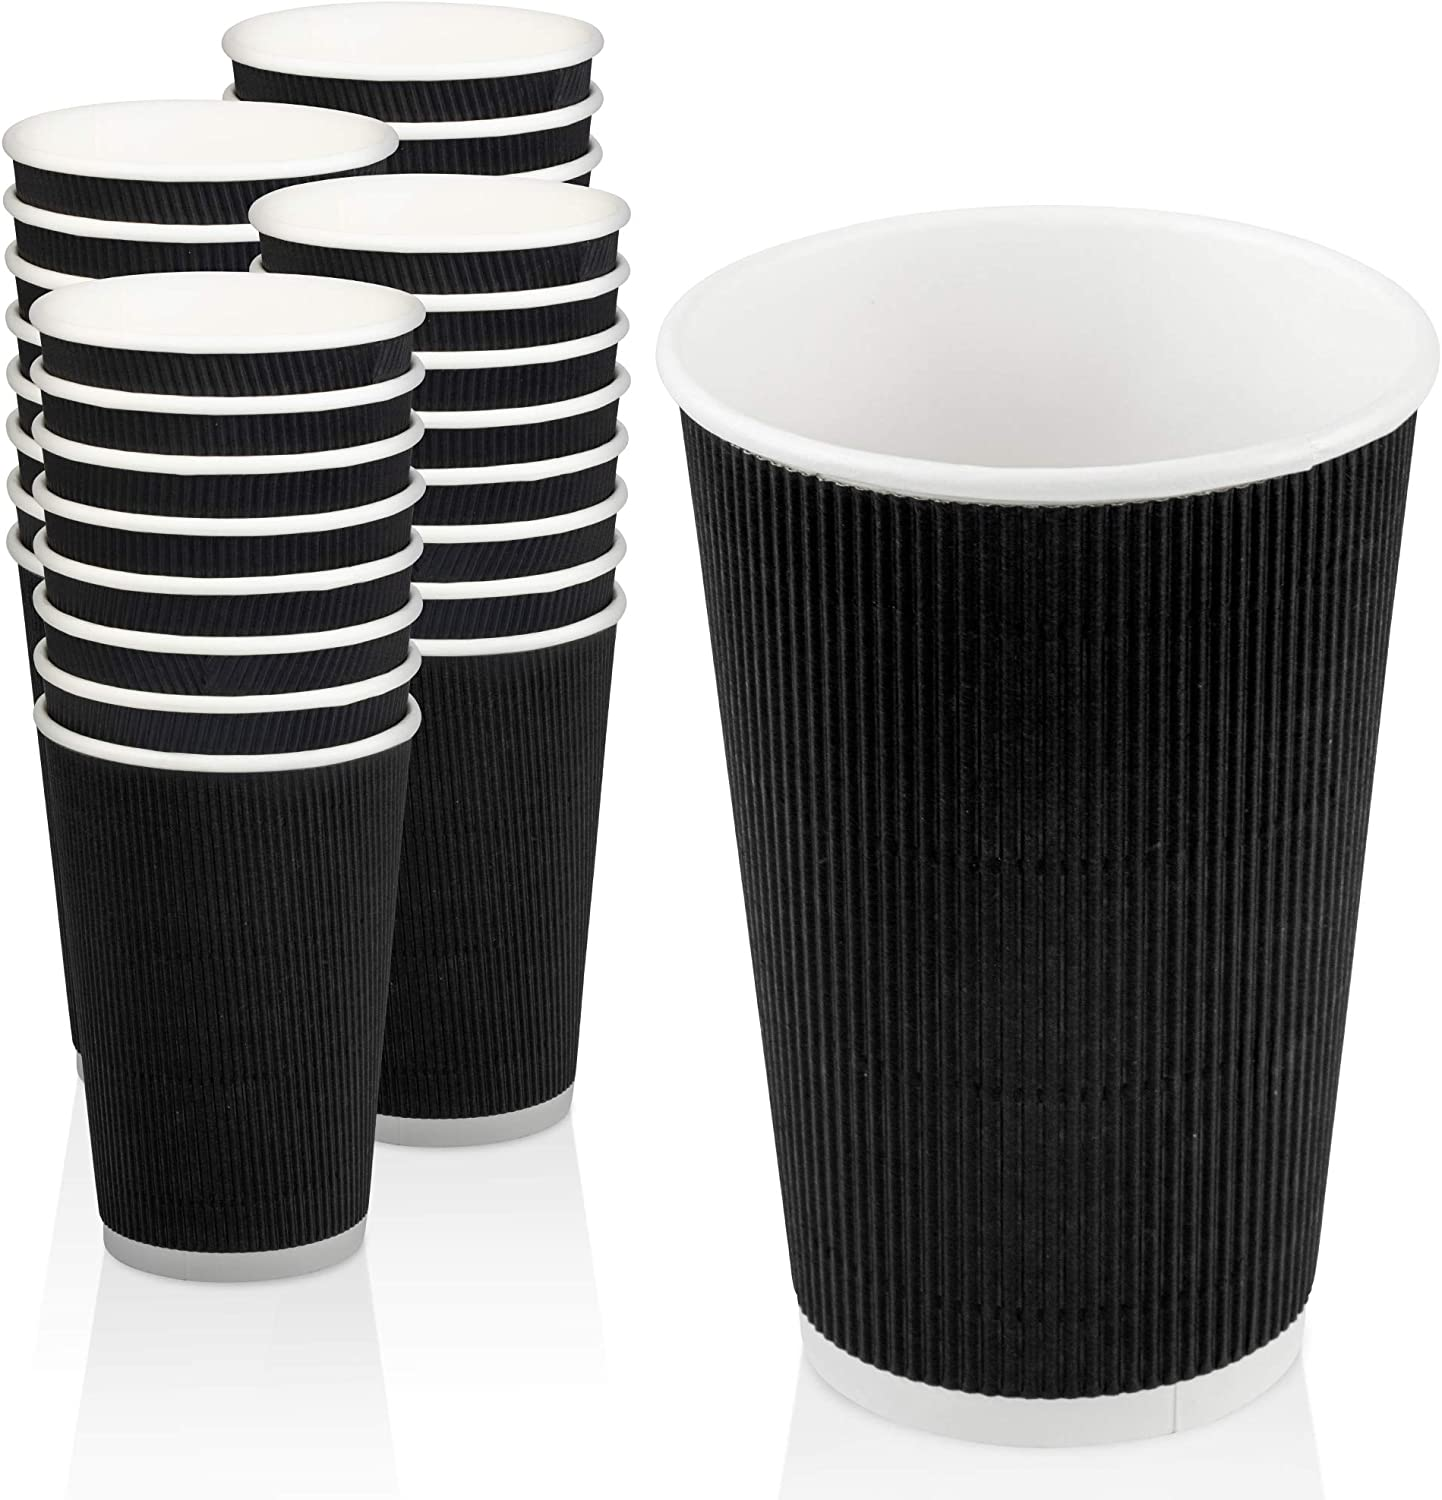 500 Pack Disposable Hot Cups - Tulsa Mall Double sold out Wall Black Insulate 16oz